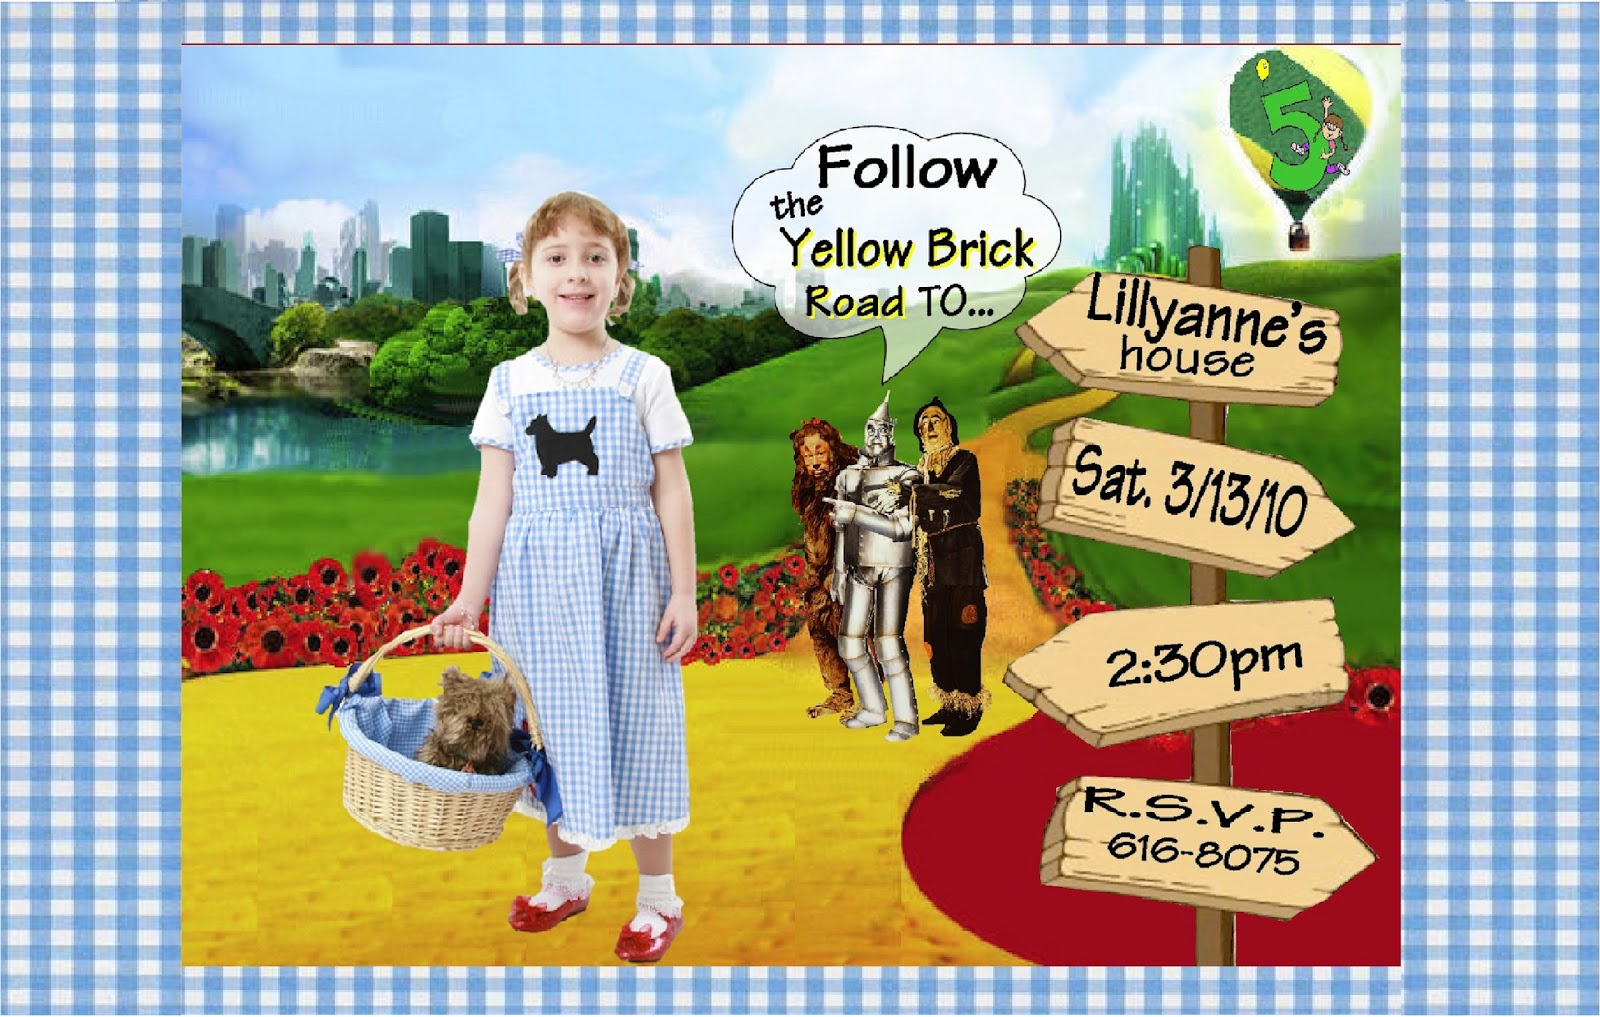 Wizard Of Oz Birthday Invitations gangcraftnet – Wizard of Oz Birthday Party Invitations